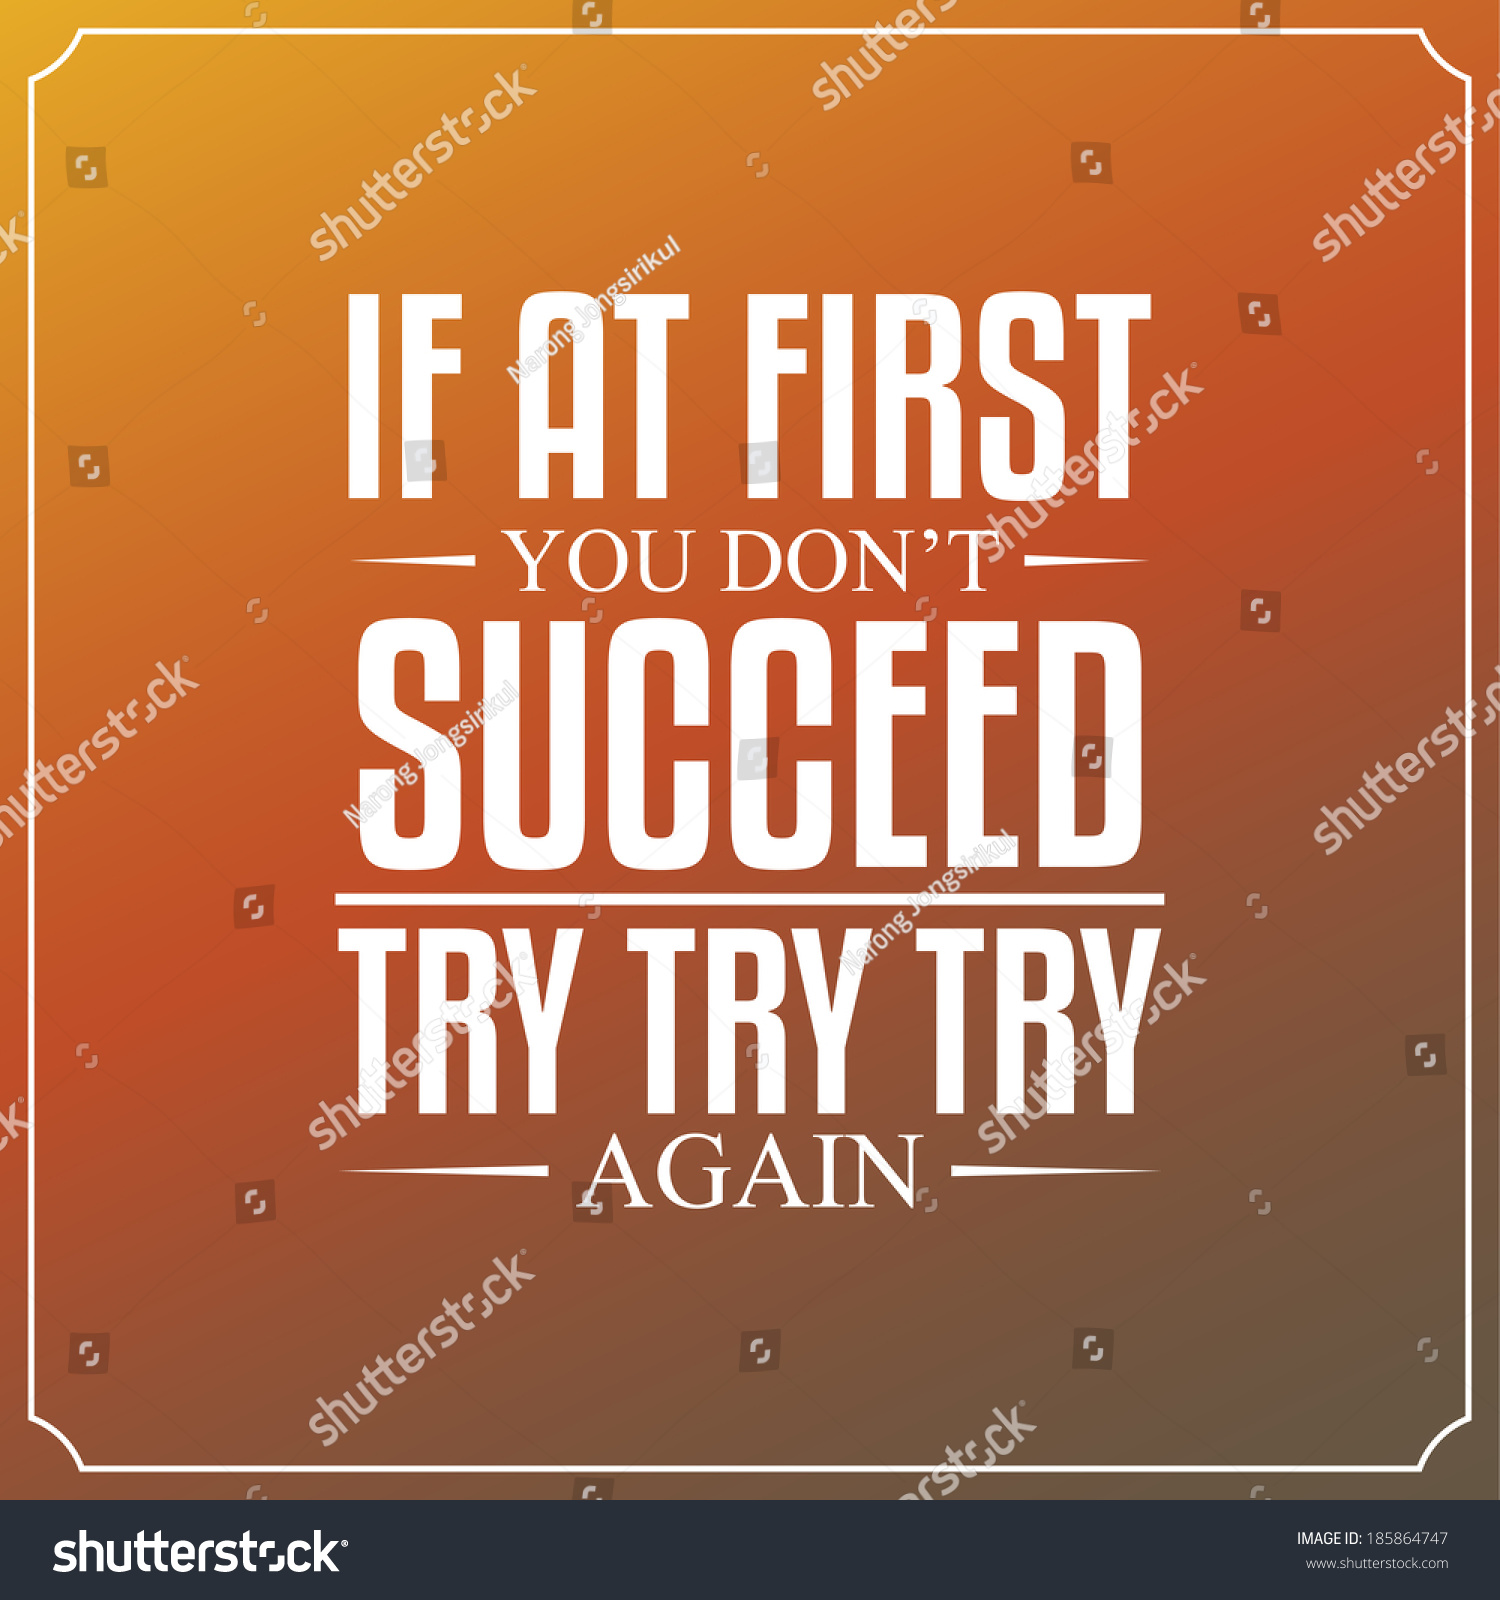 [Image: stock-vector-if-at-first-you-don-t-succe...864747.jpg]